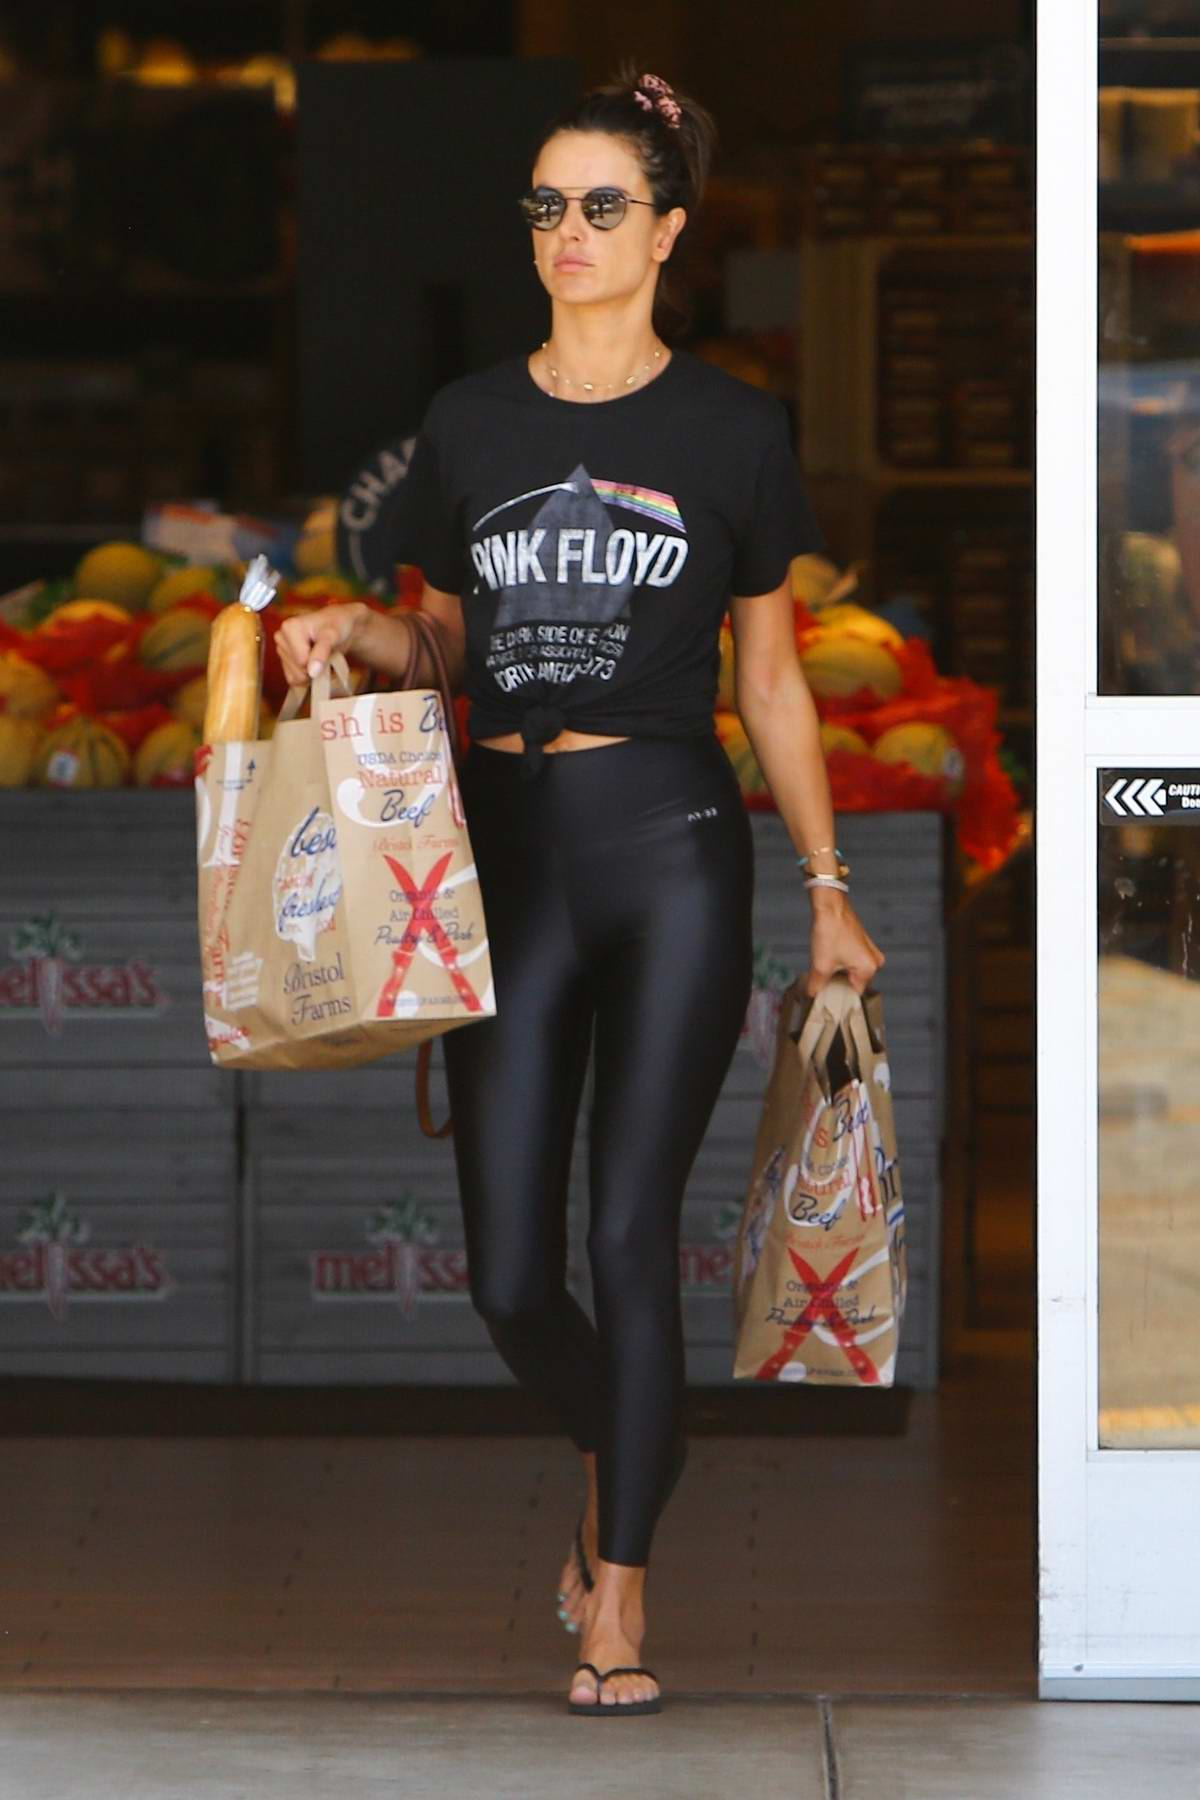 Alessandra Ambrosio rocks 'Pink Floyd' T-shirt and black leggings while shopping groceries in Los Angeles